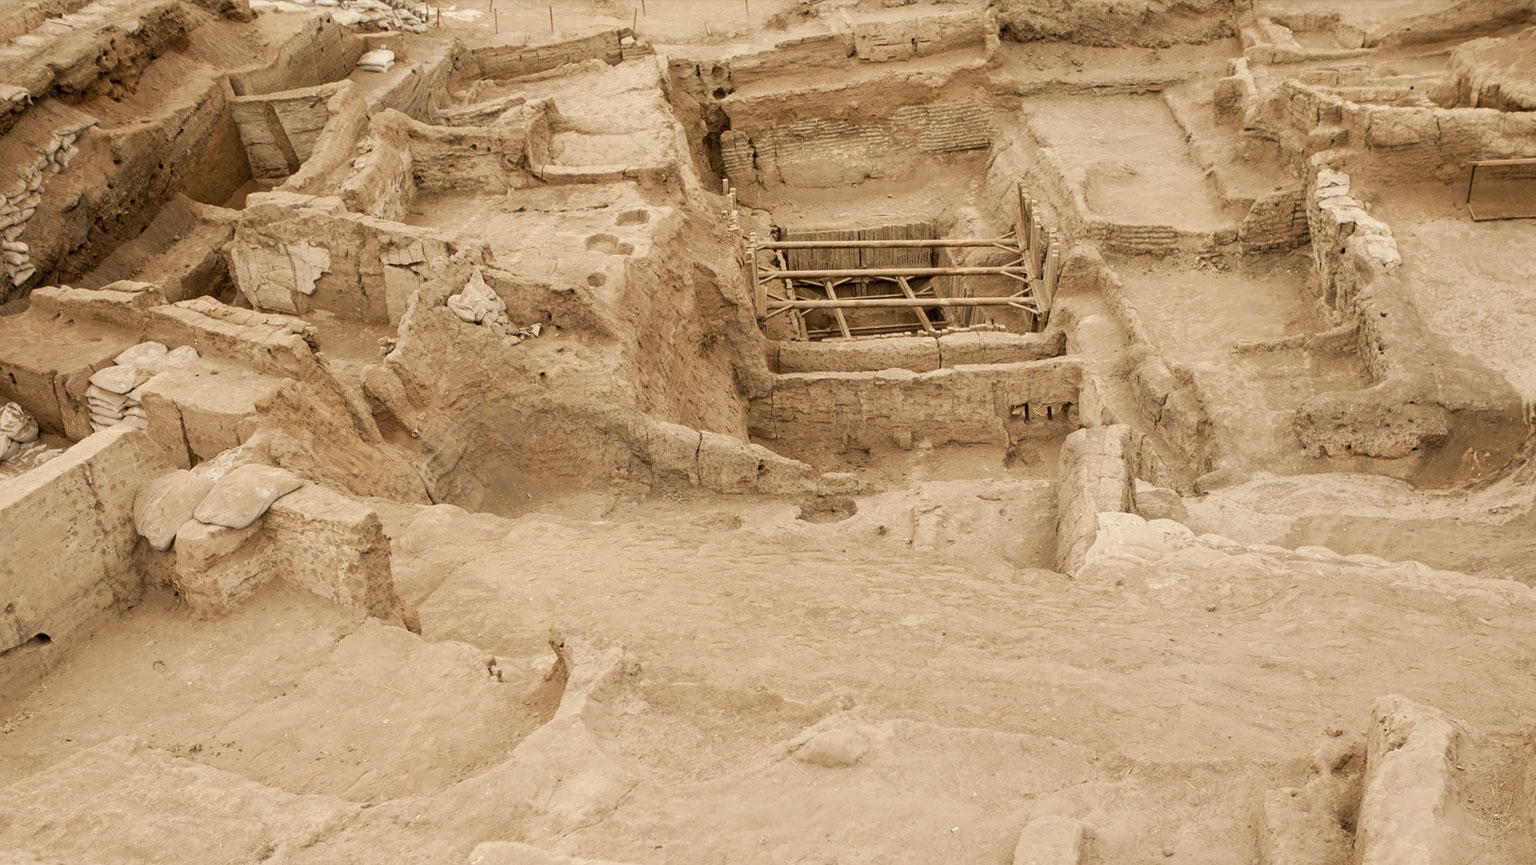 Çatalhöyük—First Experiment in Urban Living